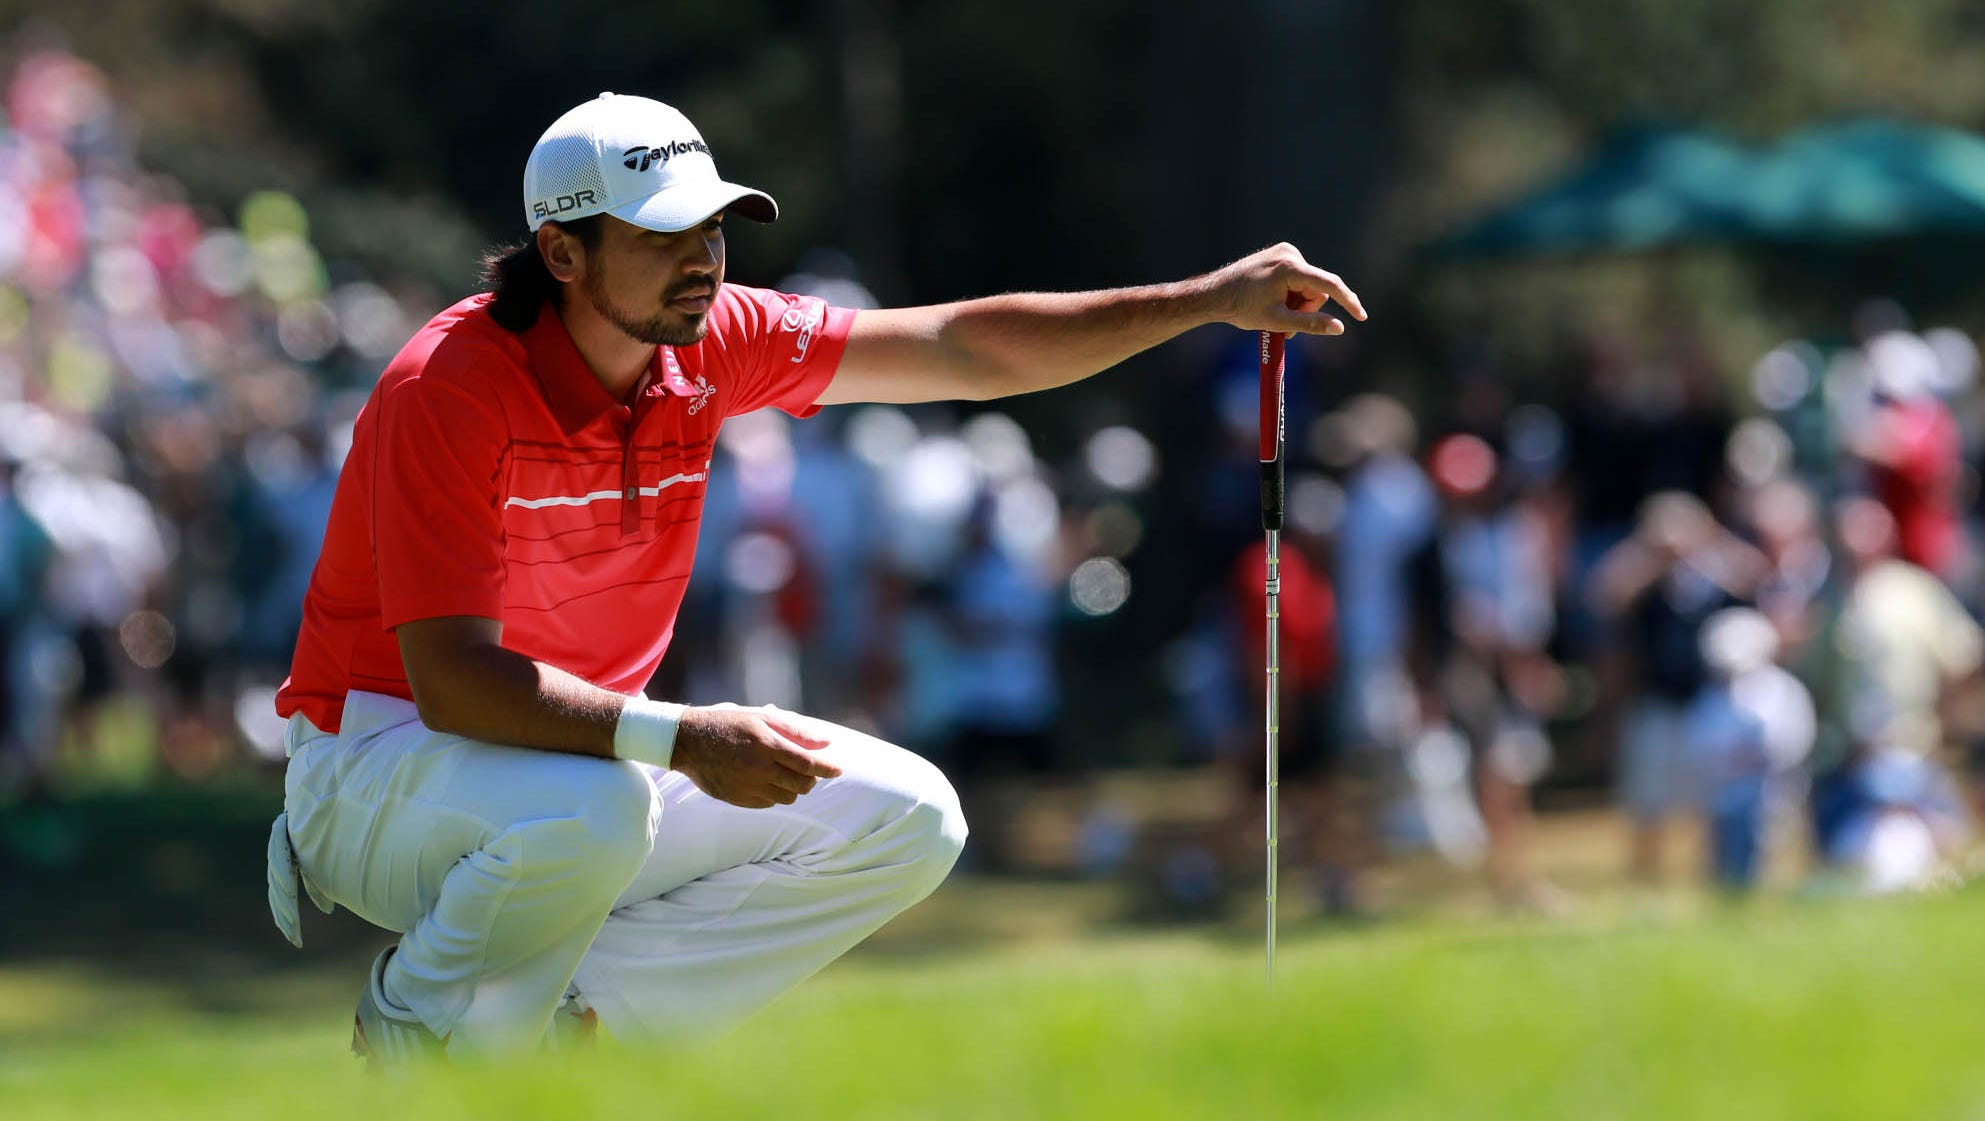 Jason Day lines up a putt at No. 3.